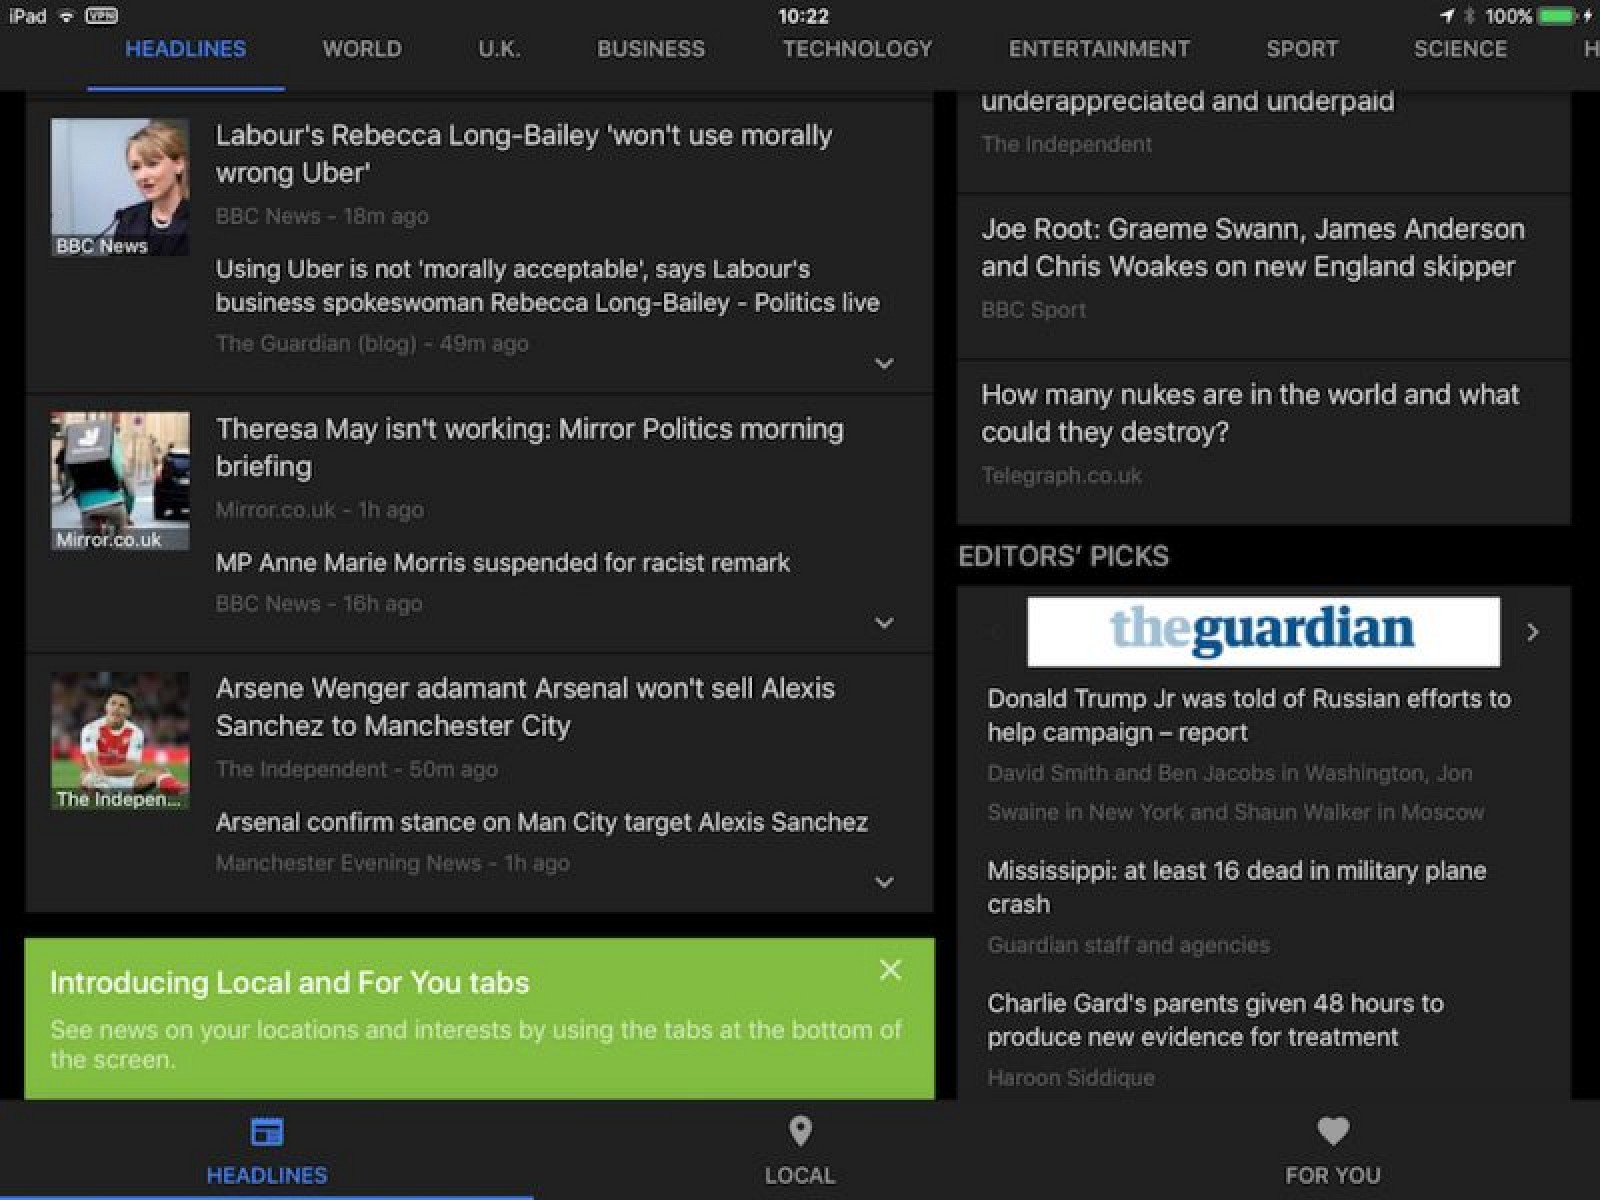 Google News Redesign Extends to Google News & Weather App